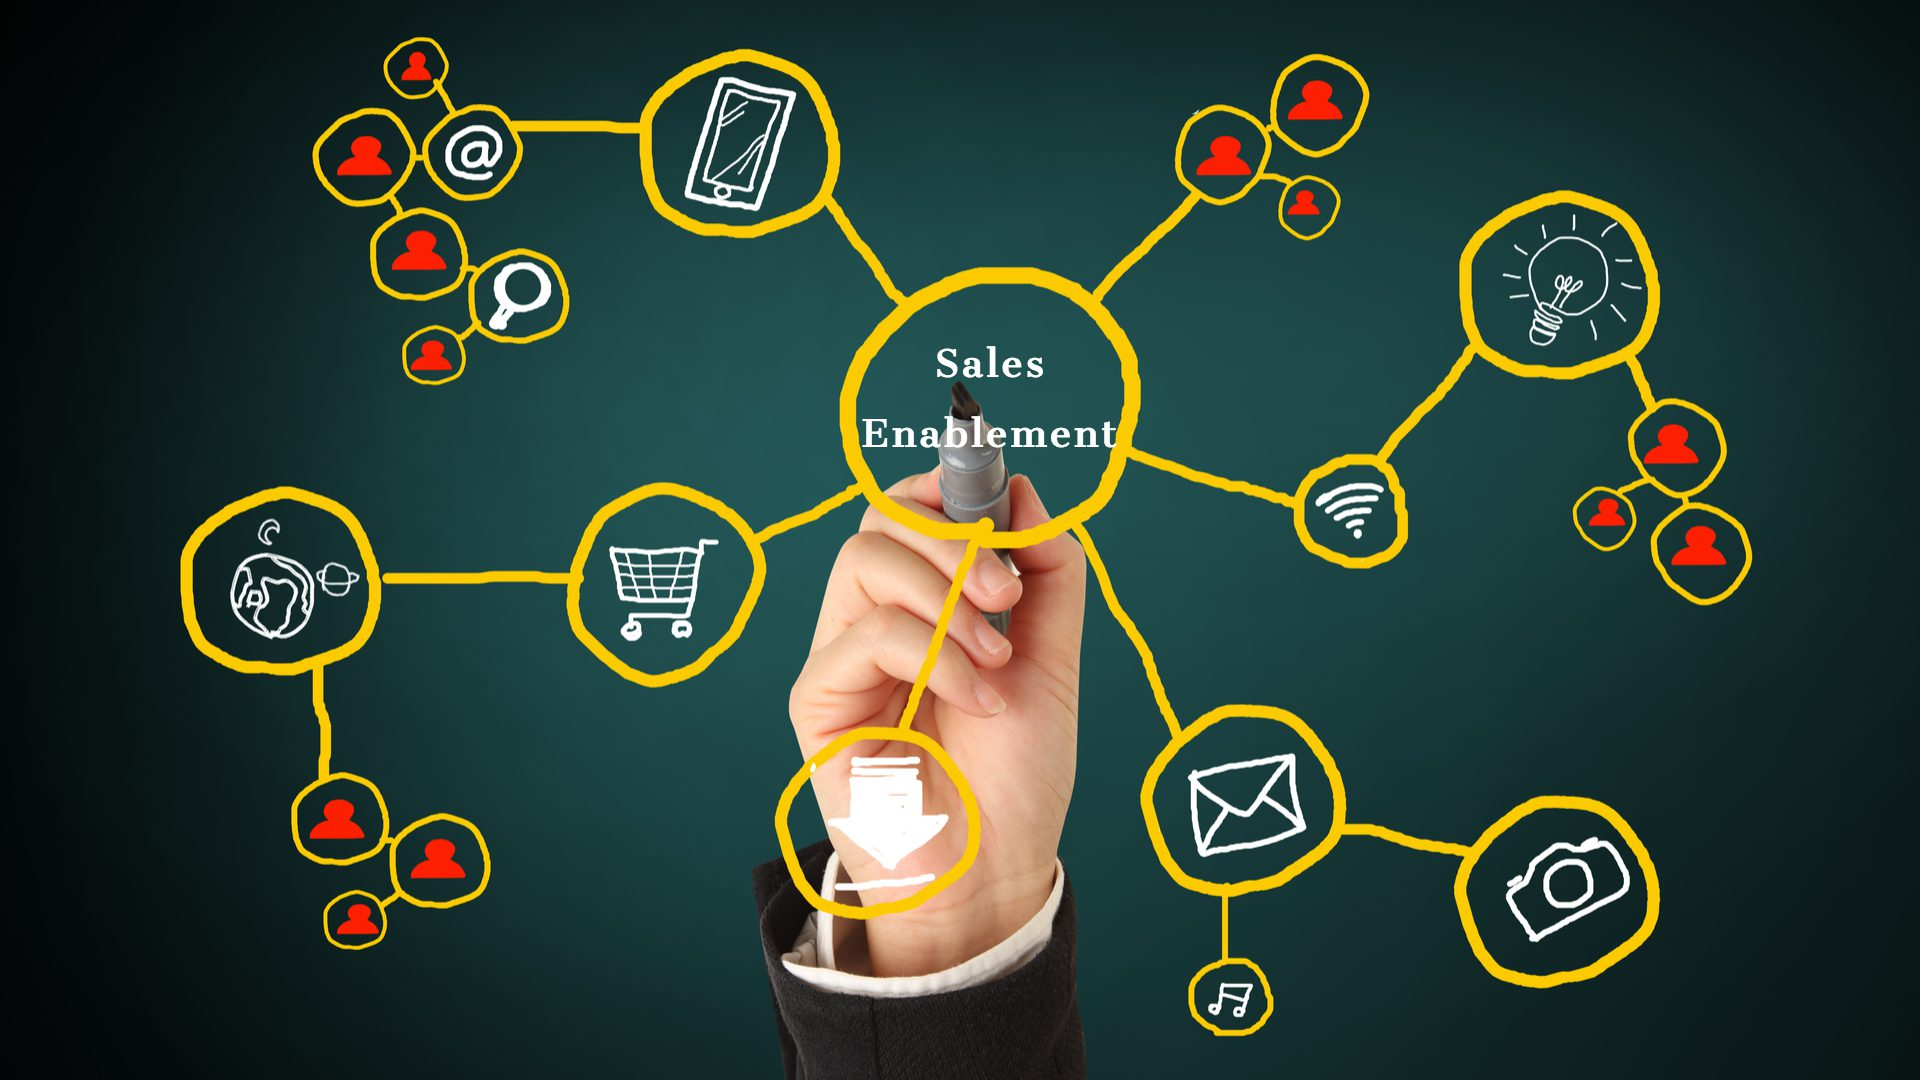 12 Sales Enablement Tools To Empower Your Sales Team